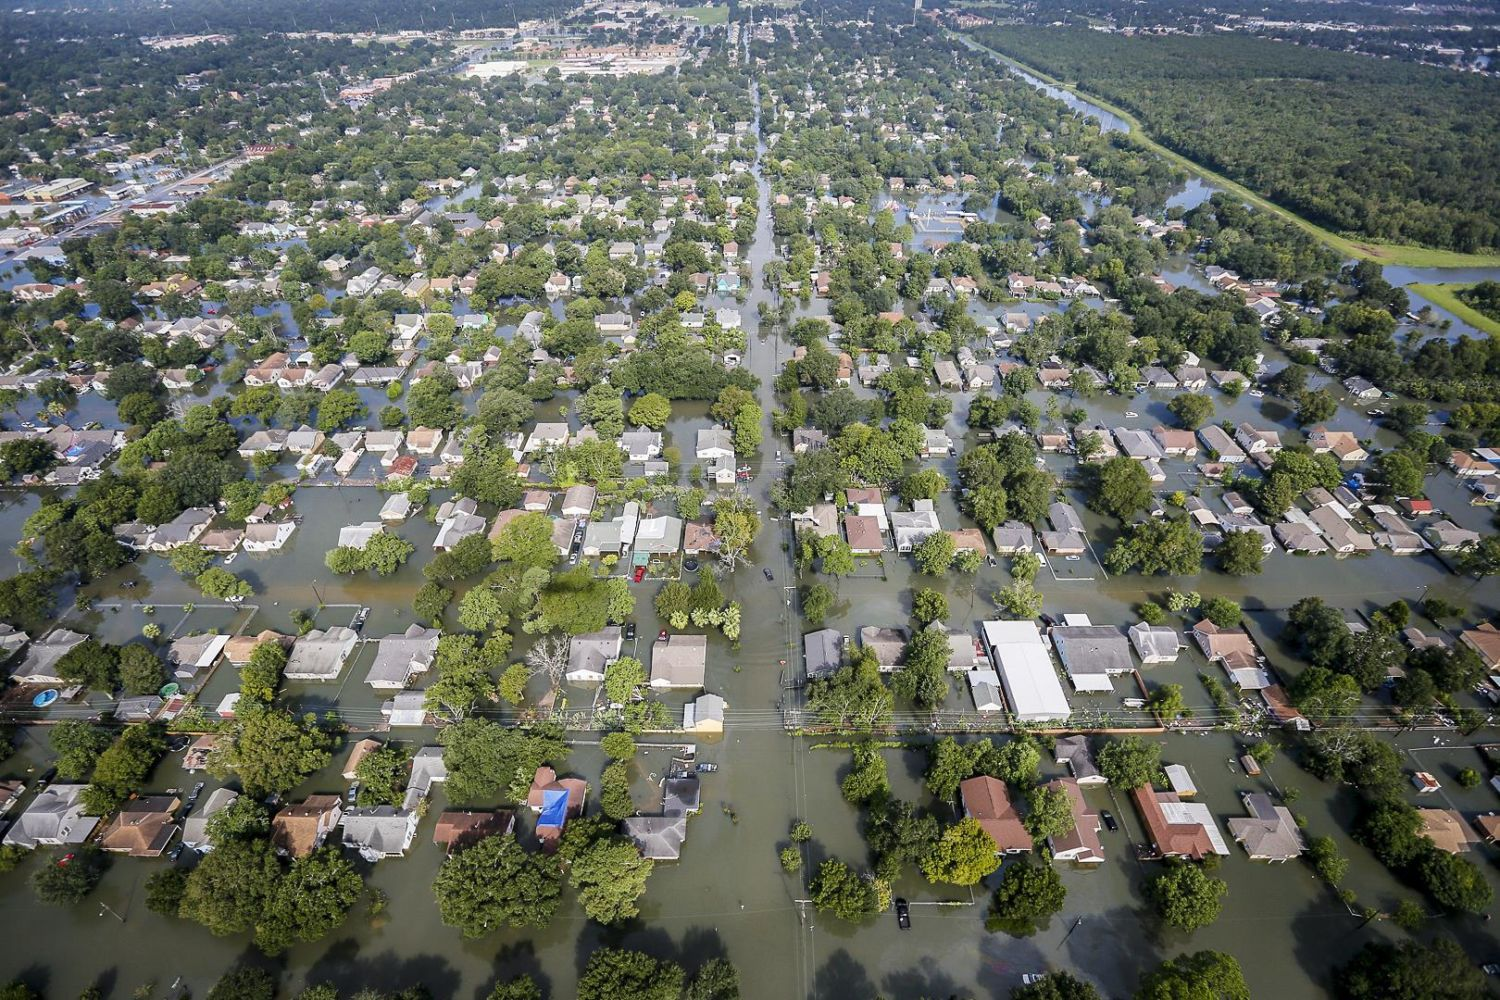 As Harvey's Floodwaters Recede, How Should Houston Rebuild ...